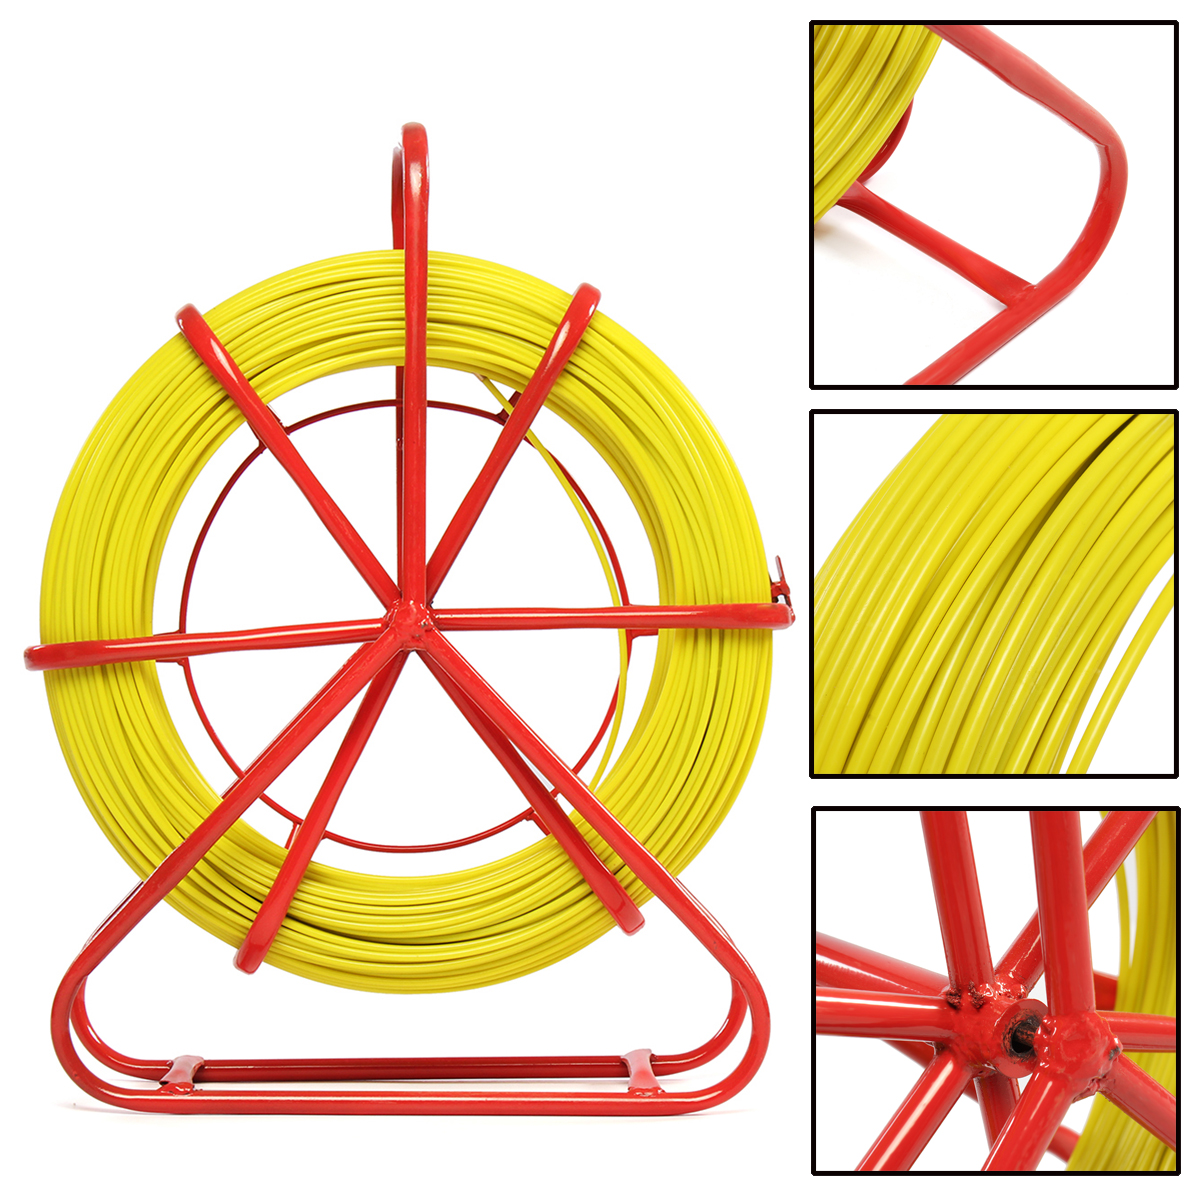 9mm Non-conductive Fish Tape Fiberglass Wire Cable Running Tube Running Rod Puller Kit Fish Tape With Superior Pulling Strength